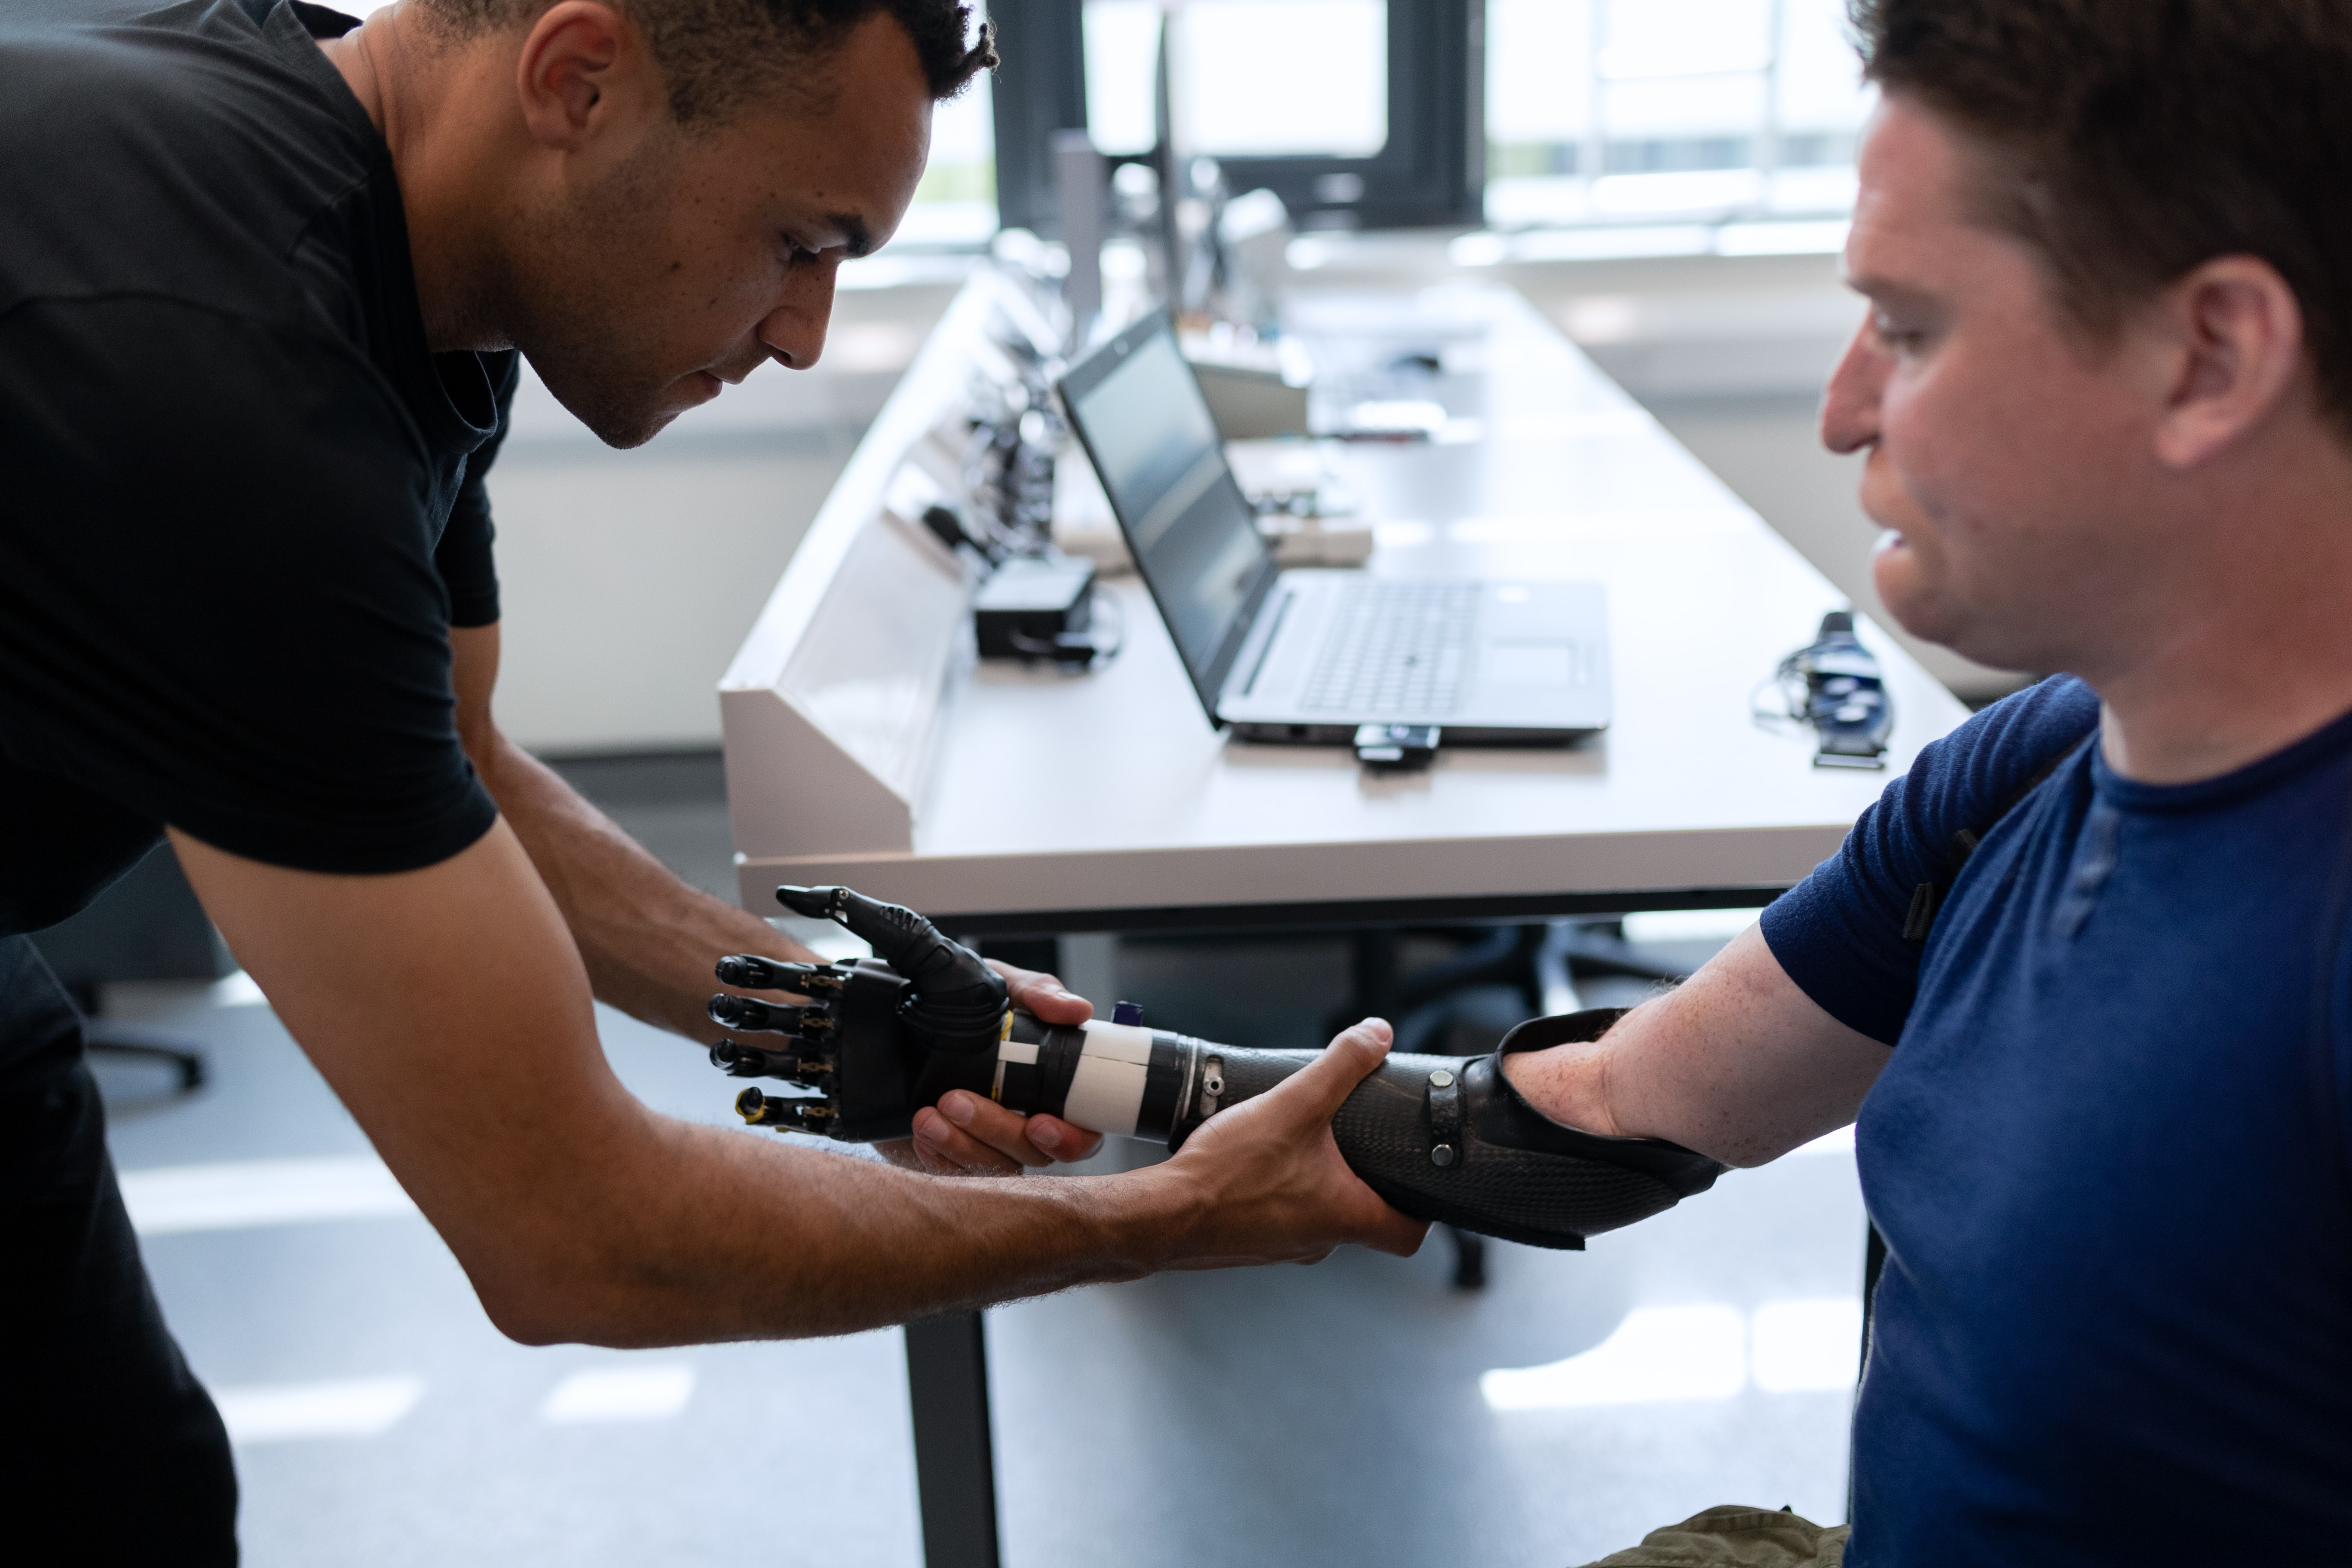 amputee being fitted with prosthetic leg